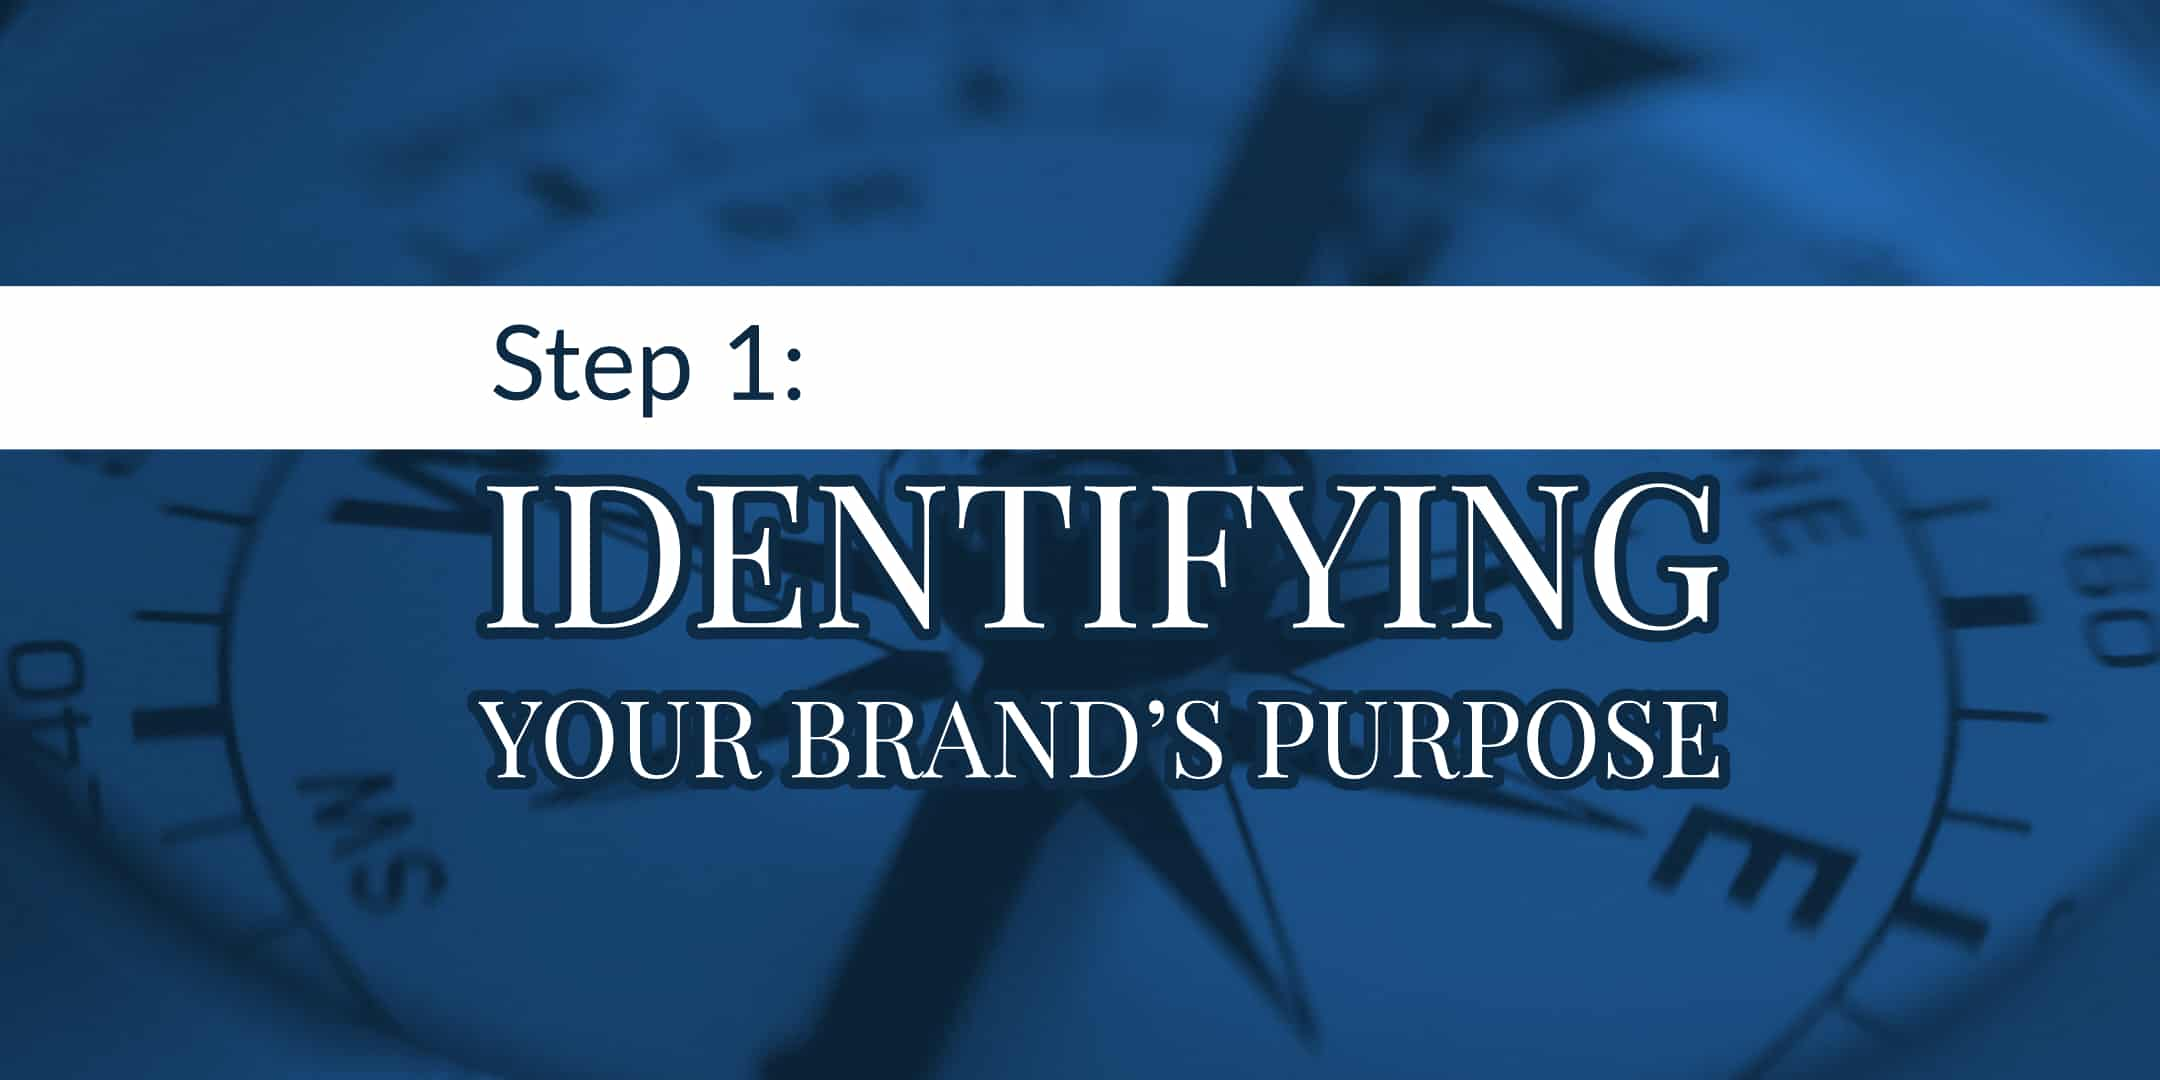 Identifying-Your-Brand's-Purpose